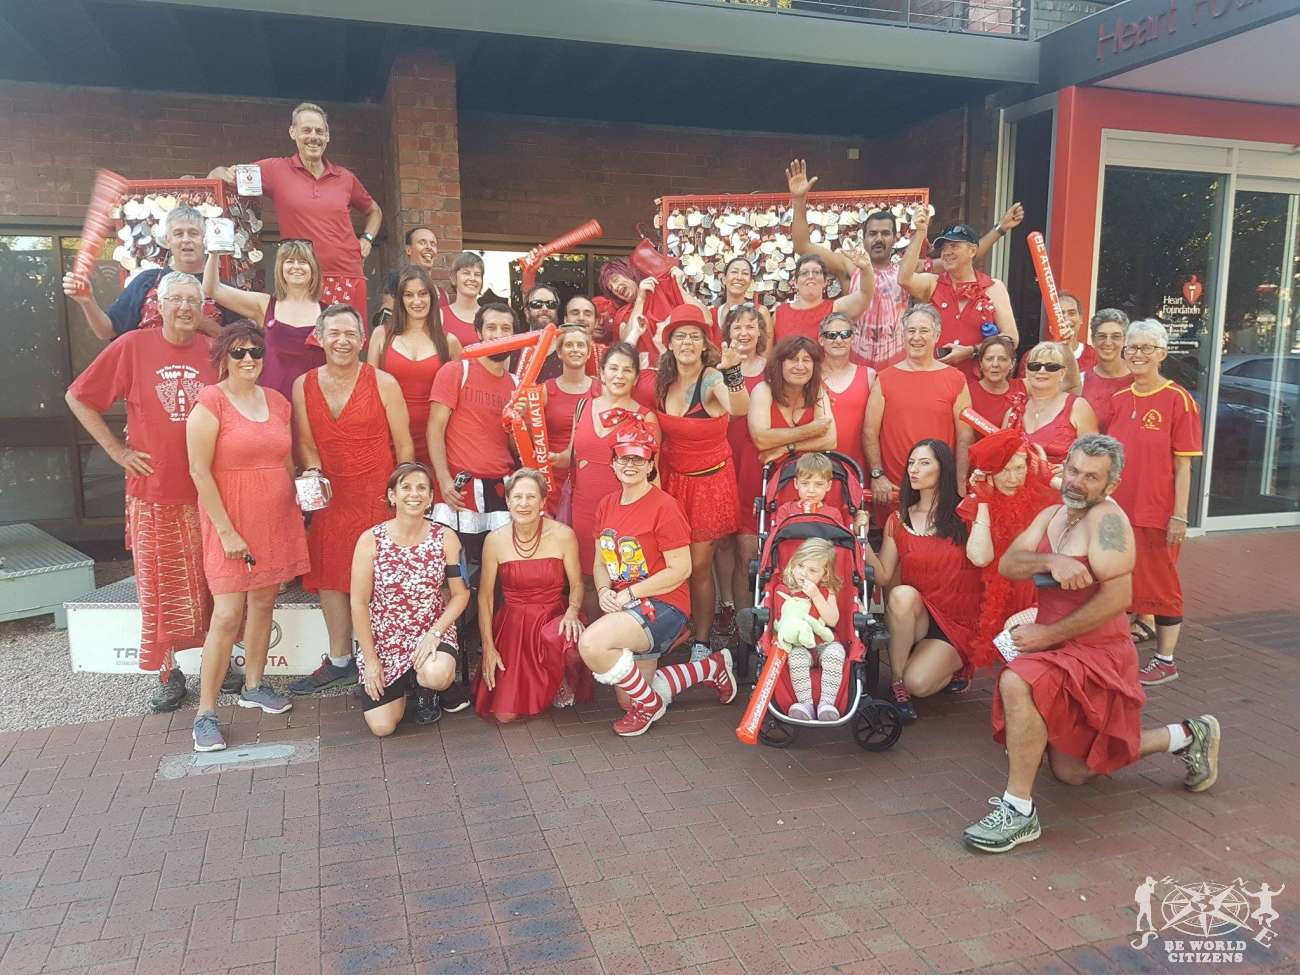 Adelaide: Hash House Harries Red Run